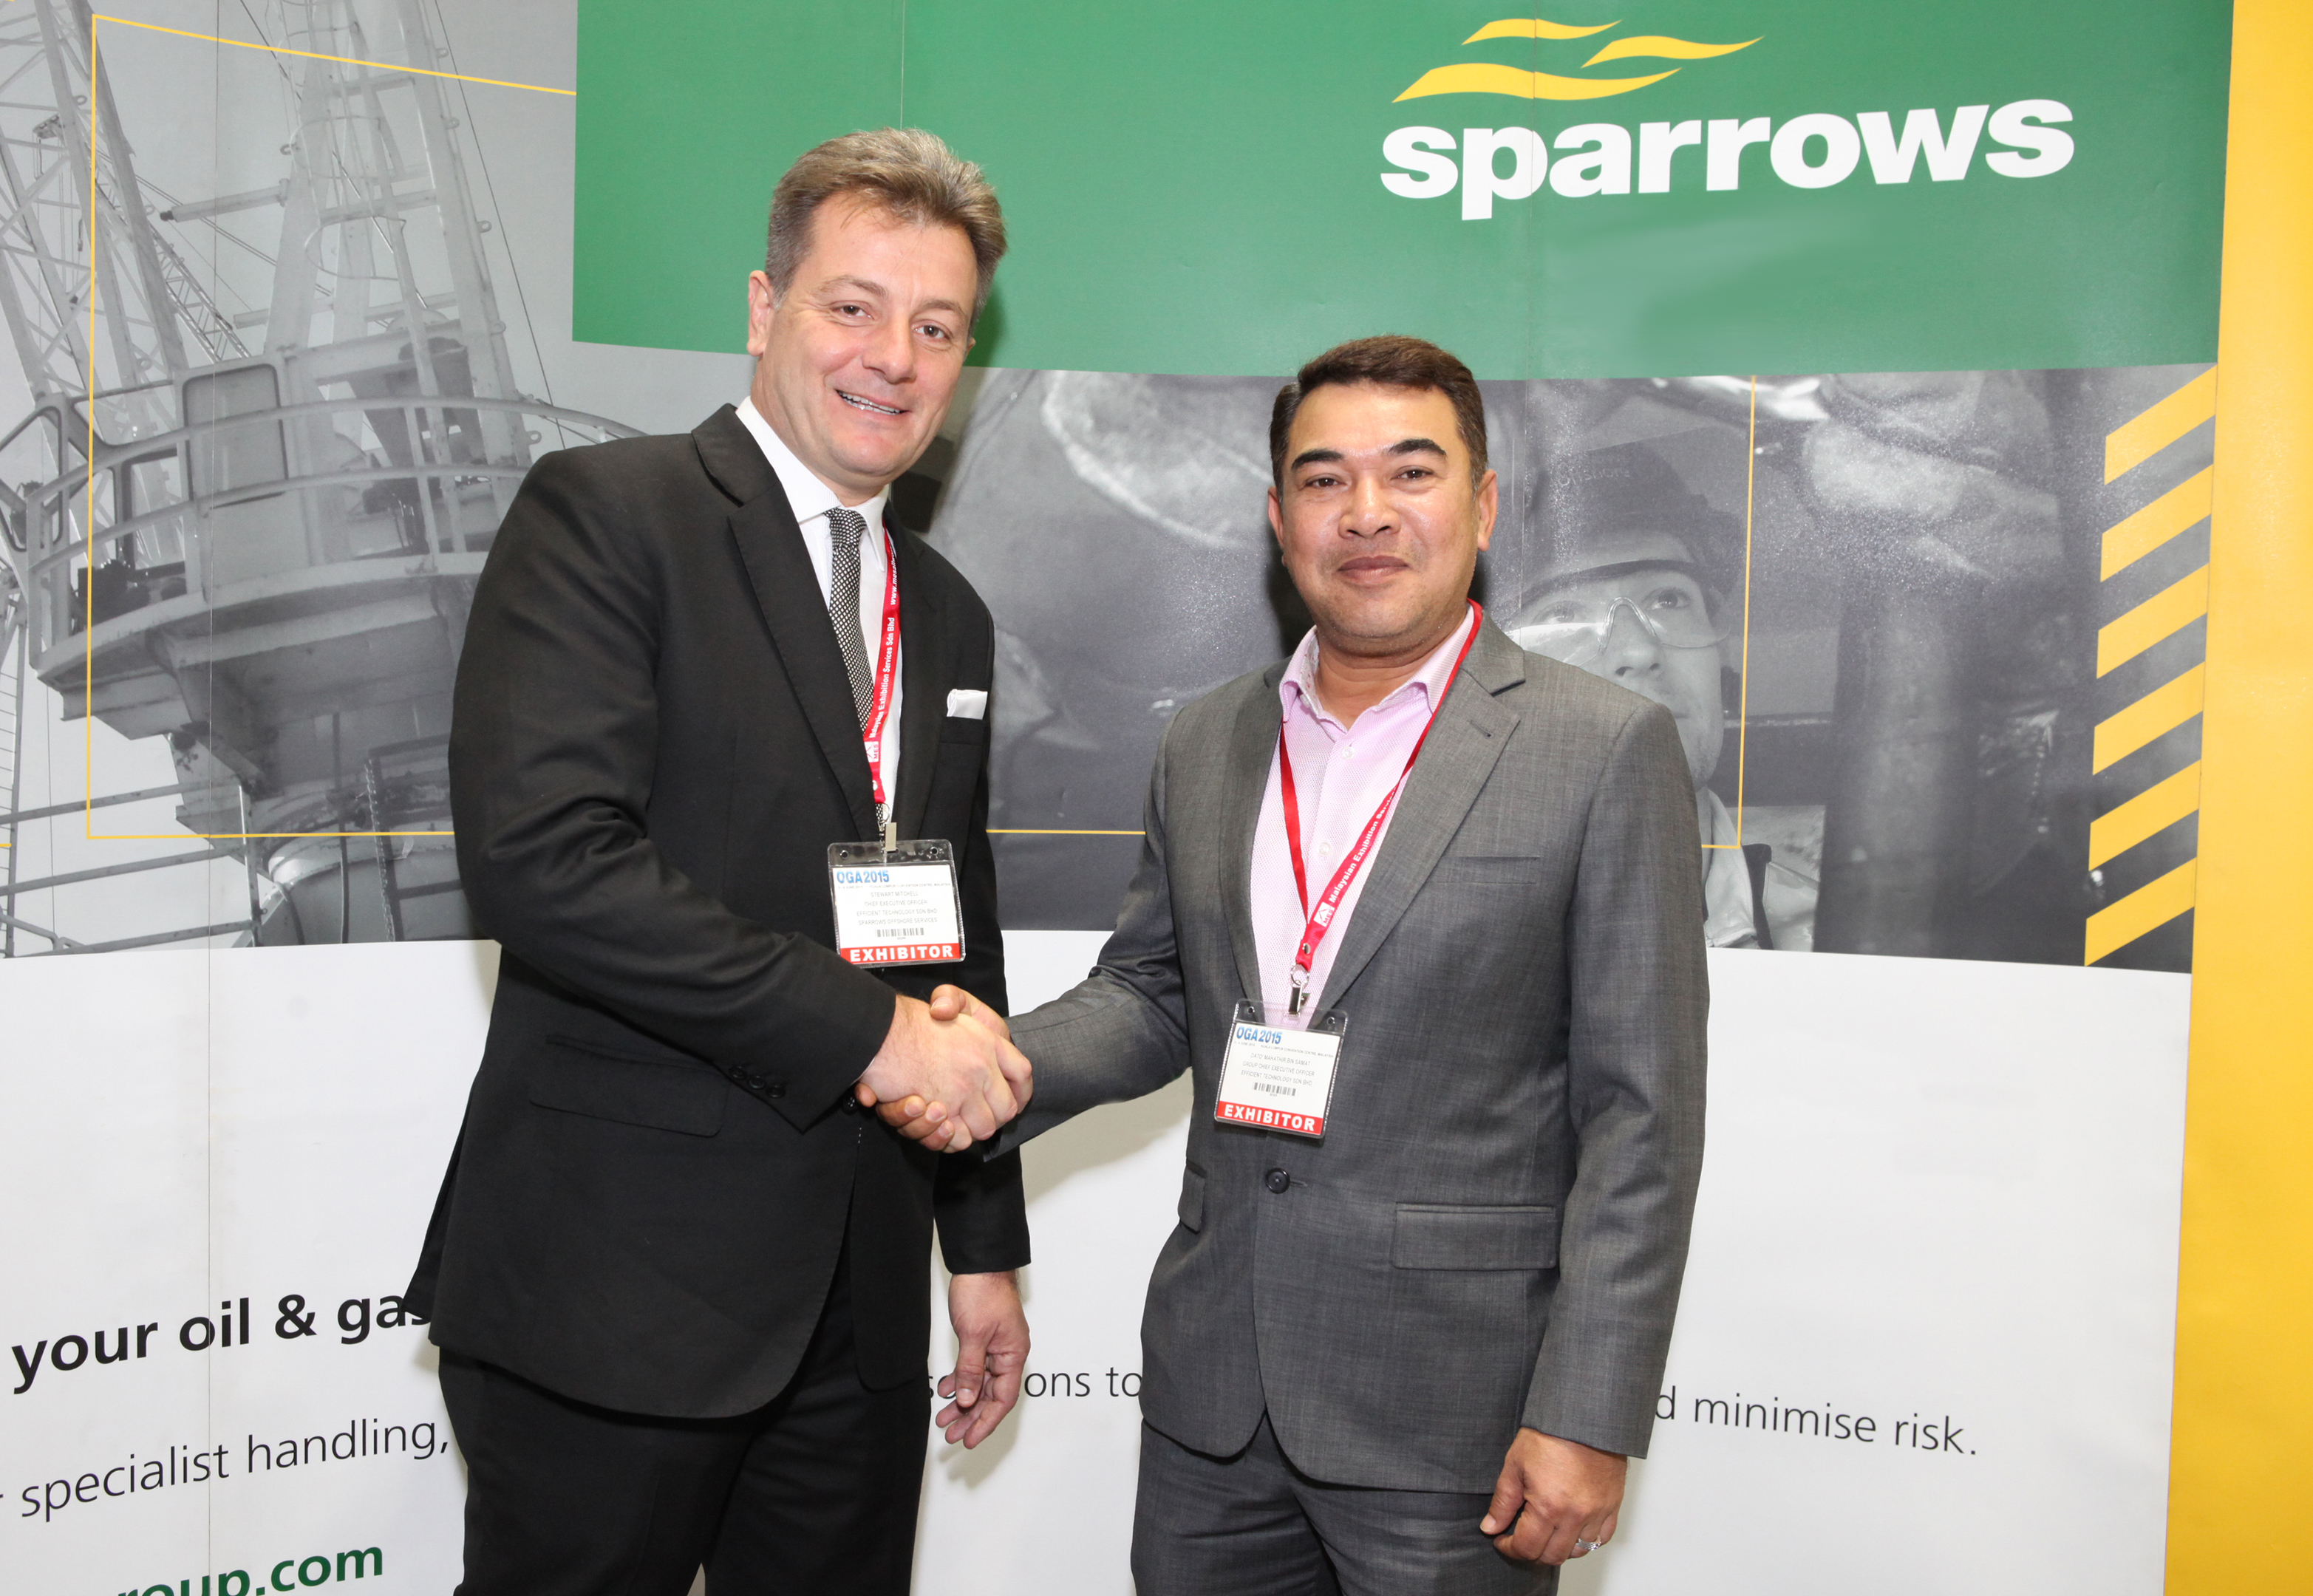 Sparrows Group and Eftech have signed a new deal